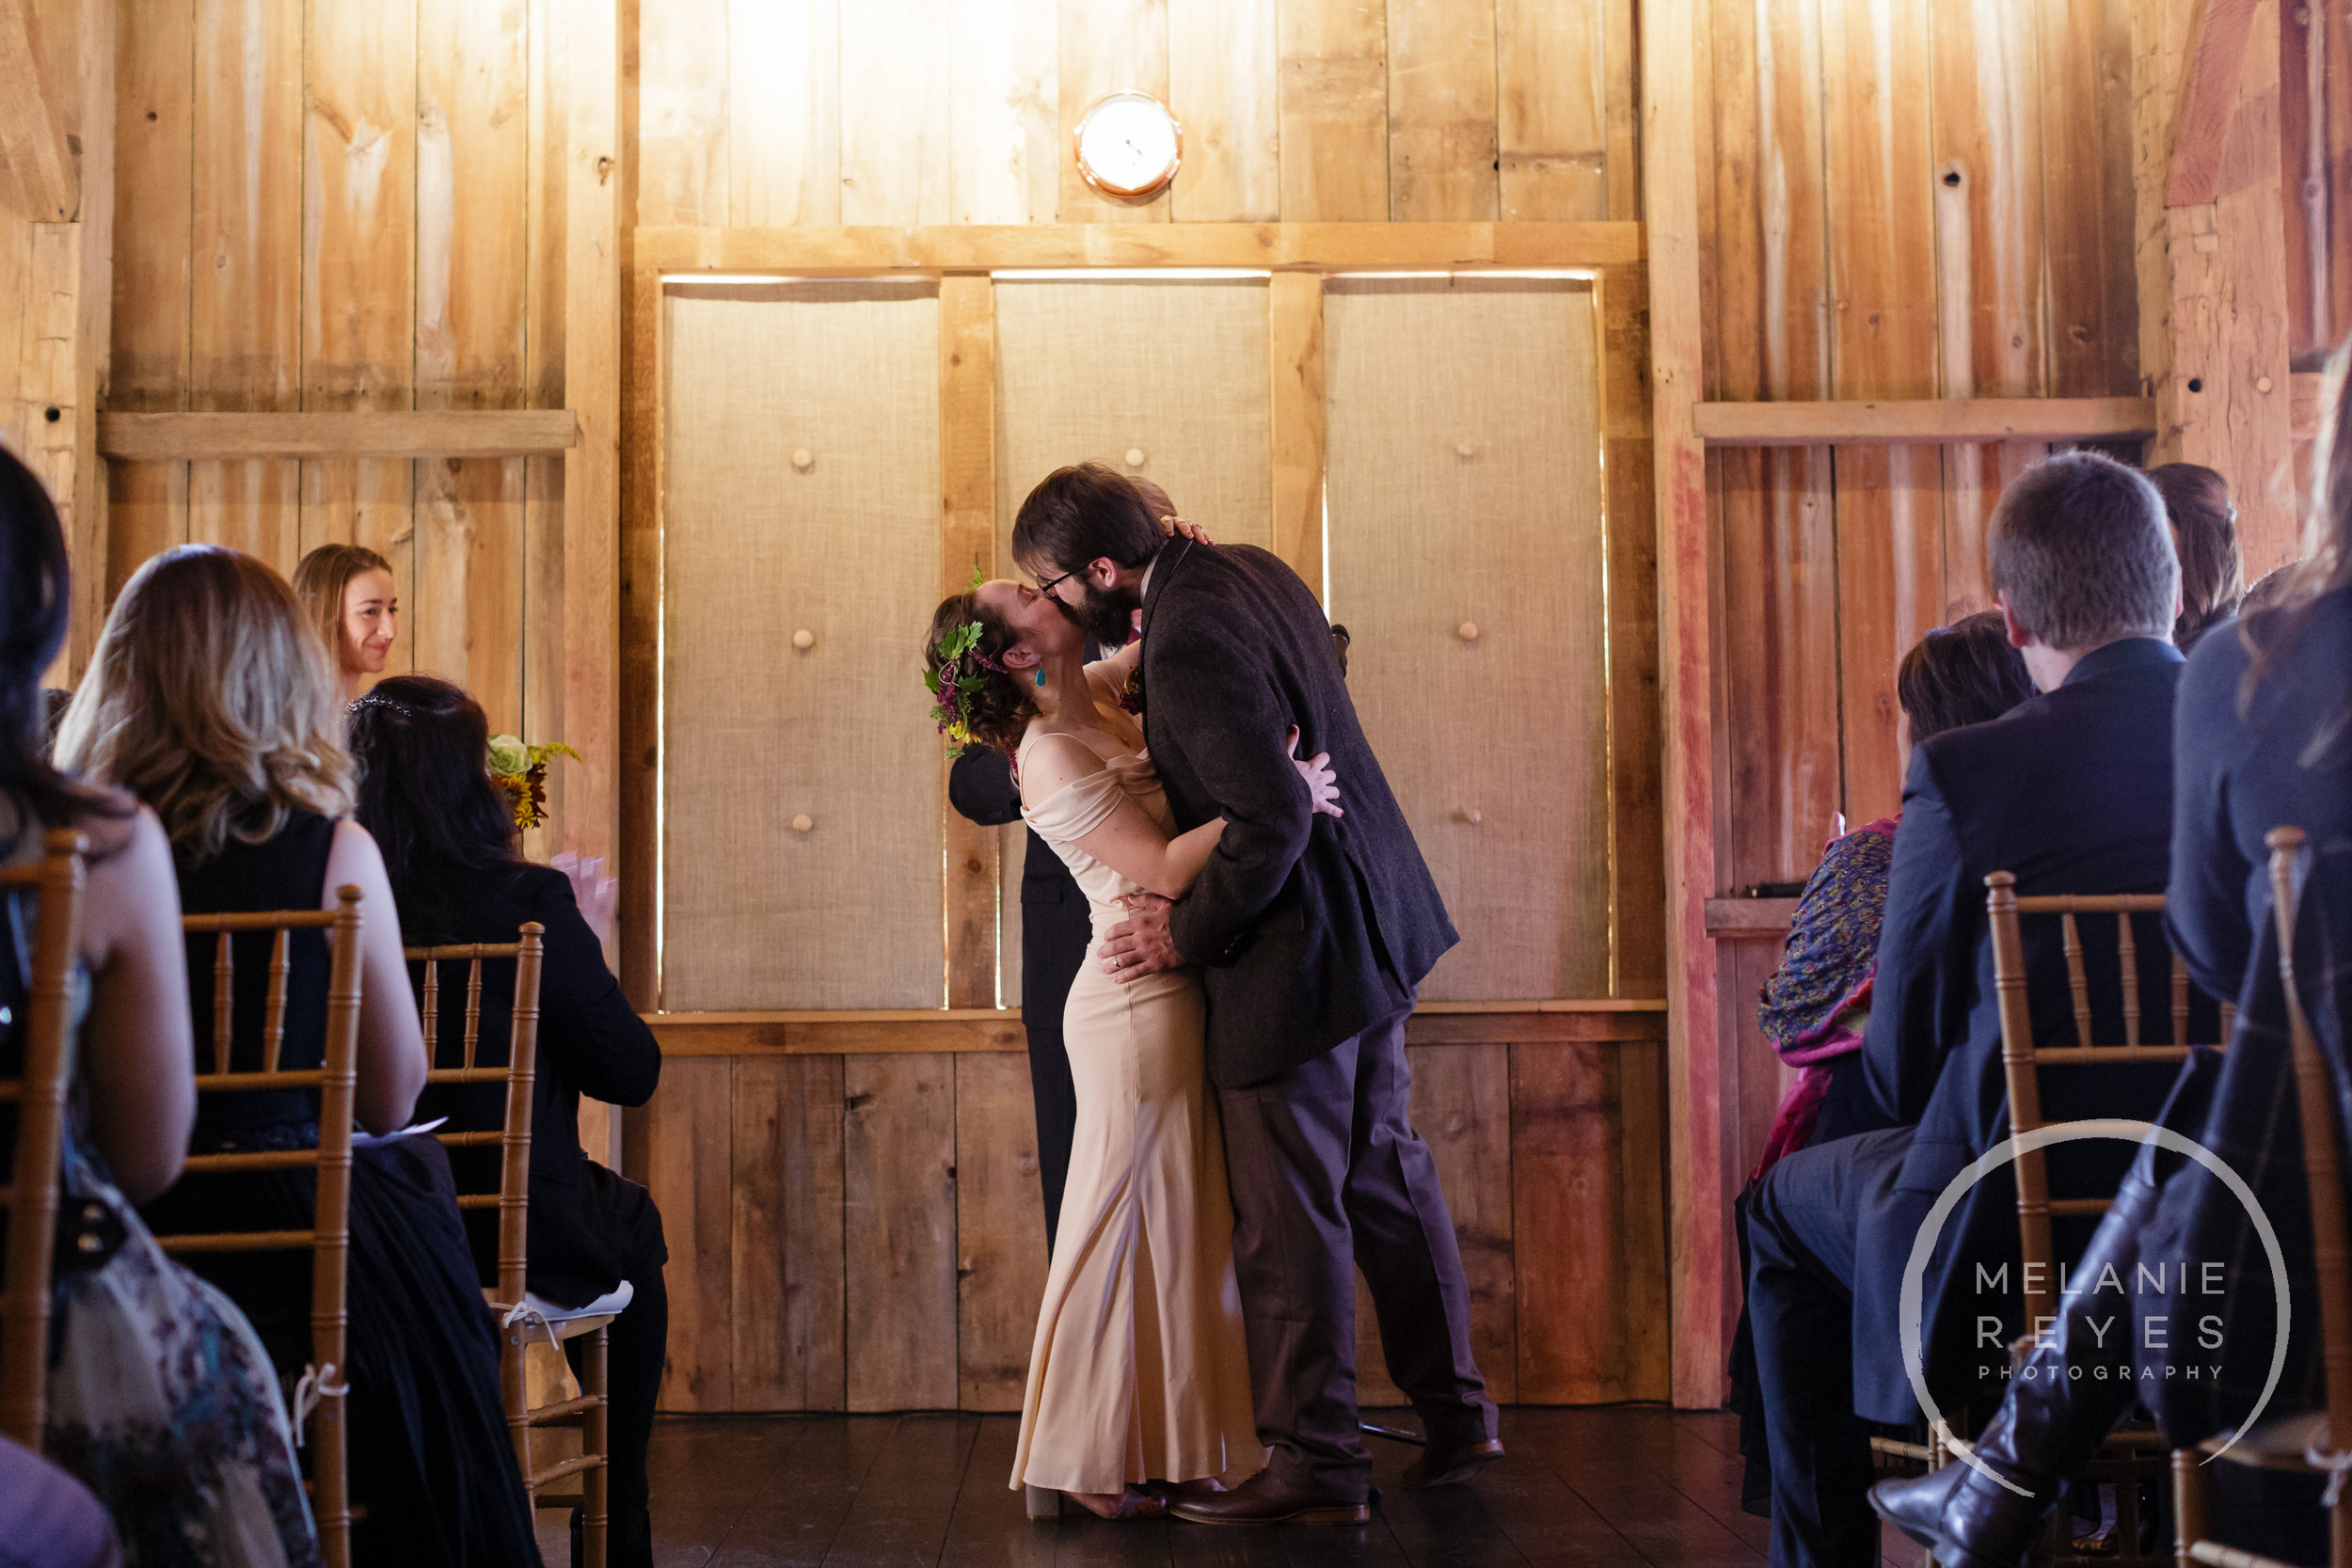 zingermans_cornman_farms_wedding_melanie_reyes_photography_019.JPG